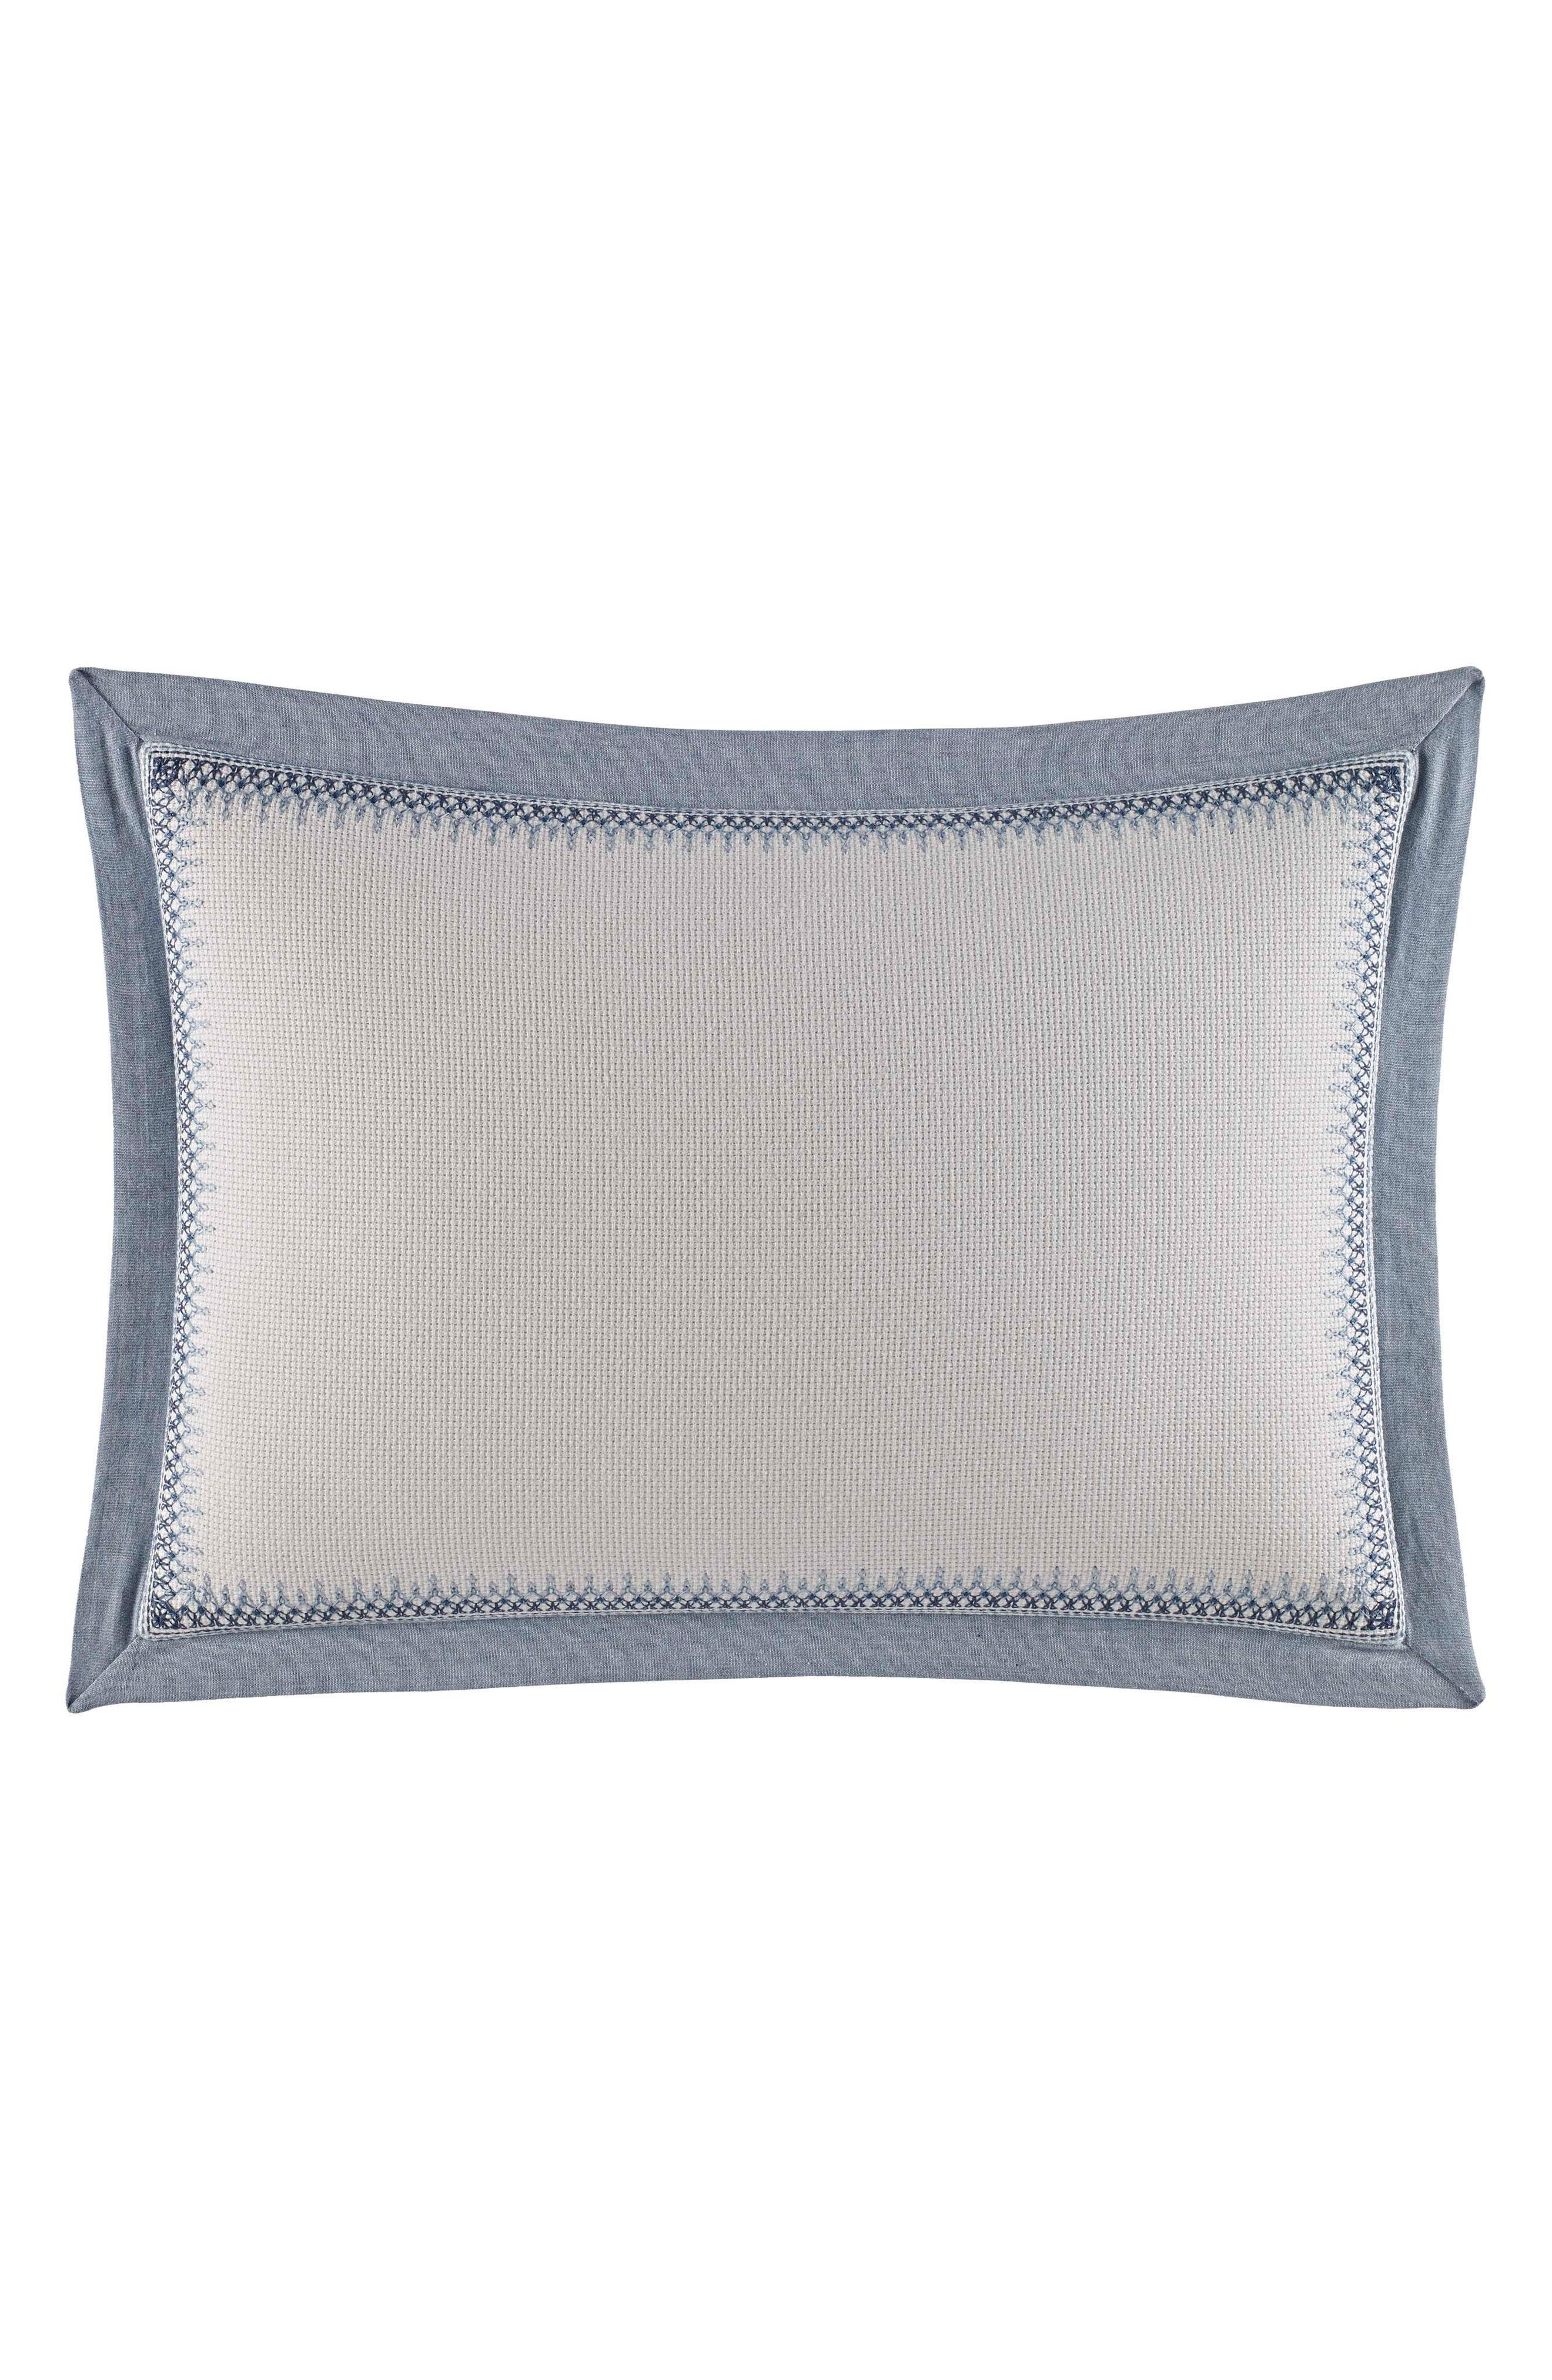 Alternate Image 1 Selected - Nautica Abbot Embroidered Accent Pillow